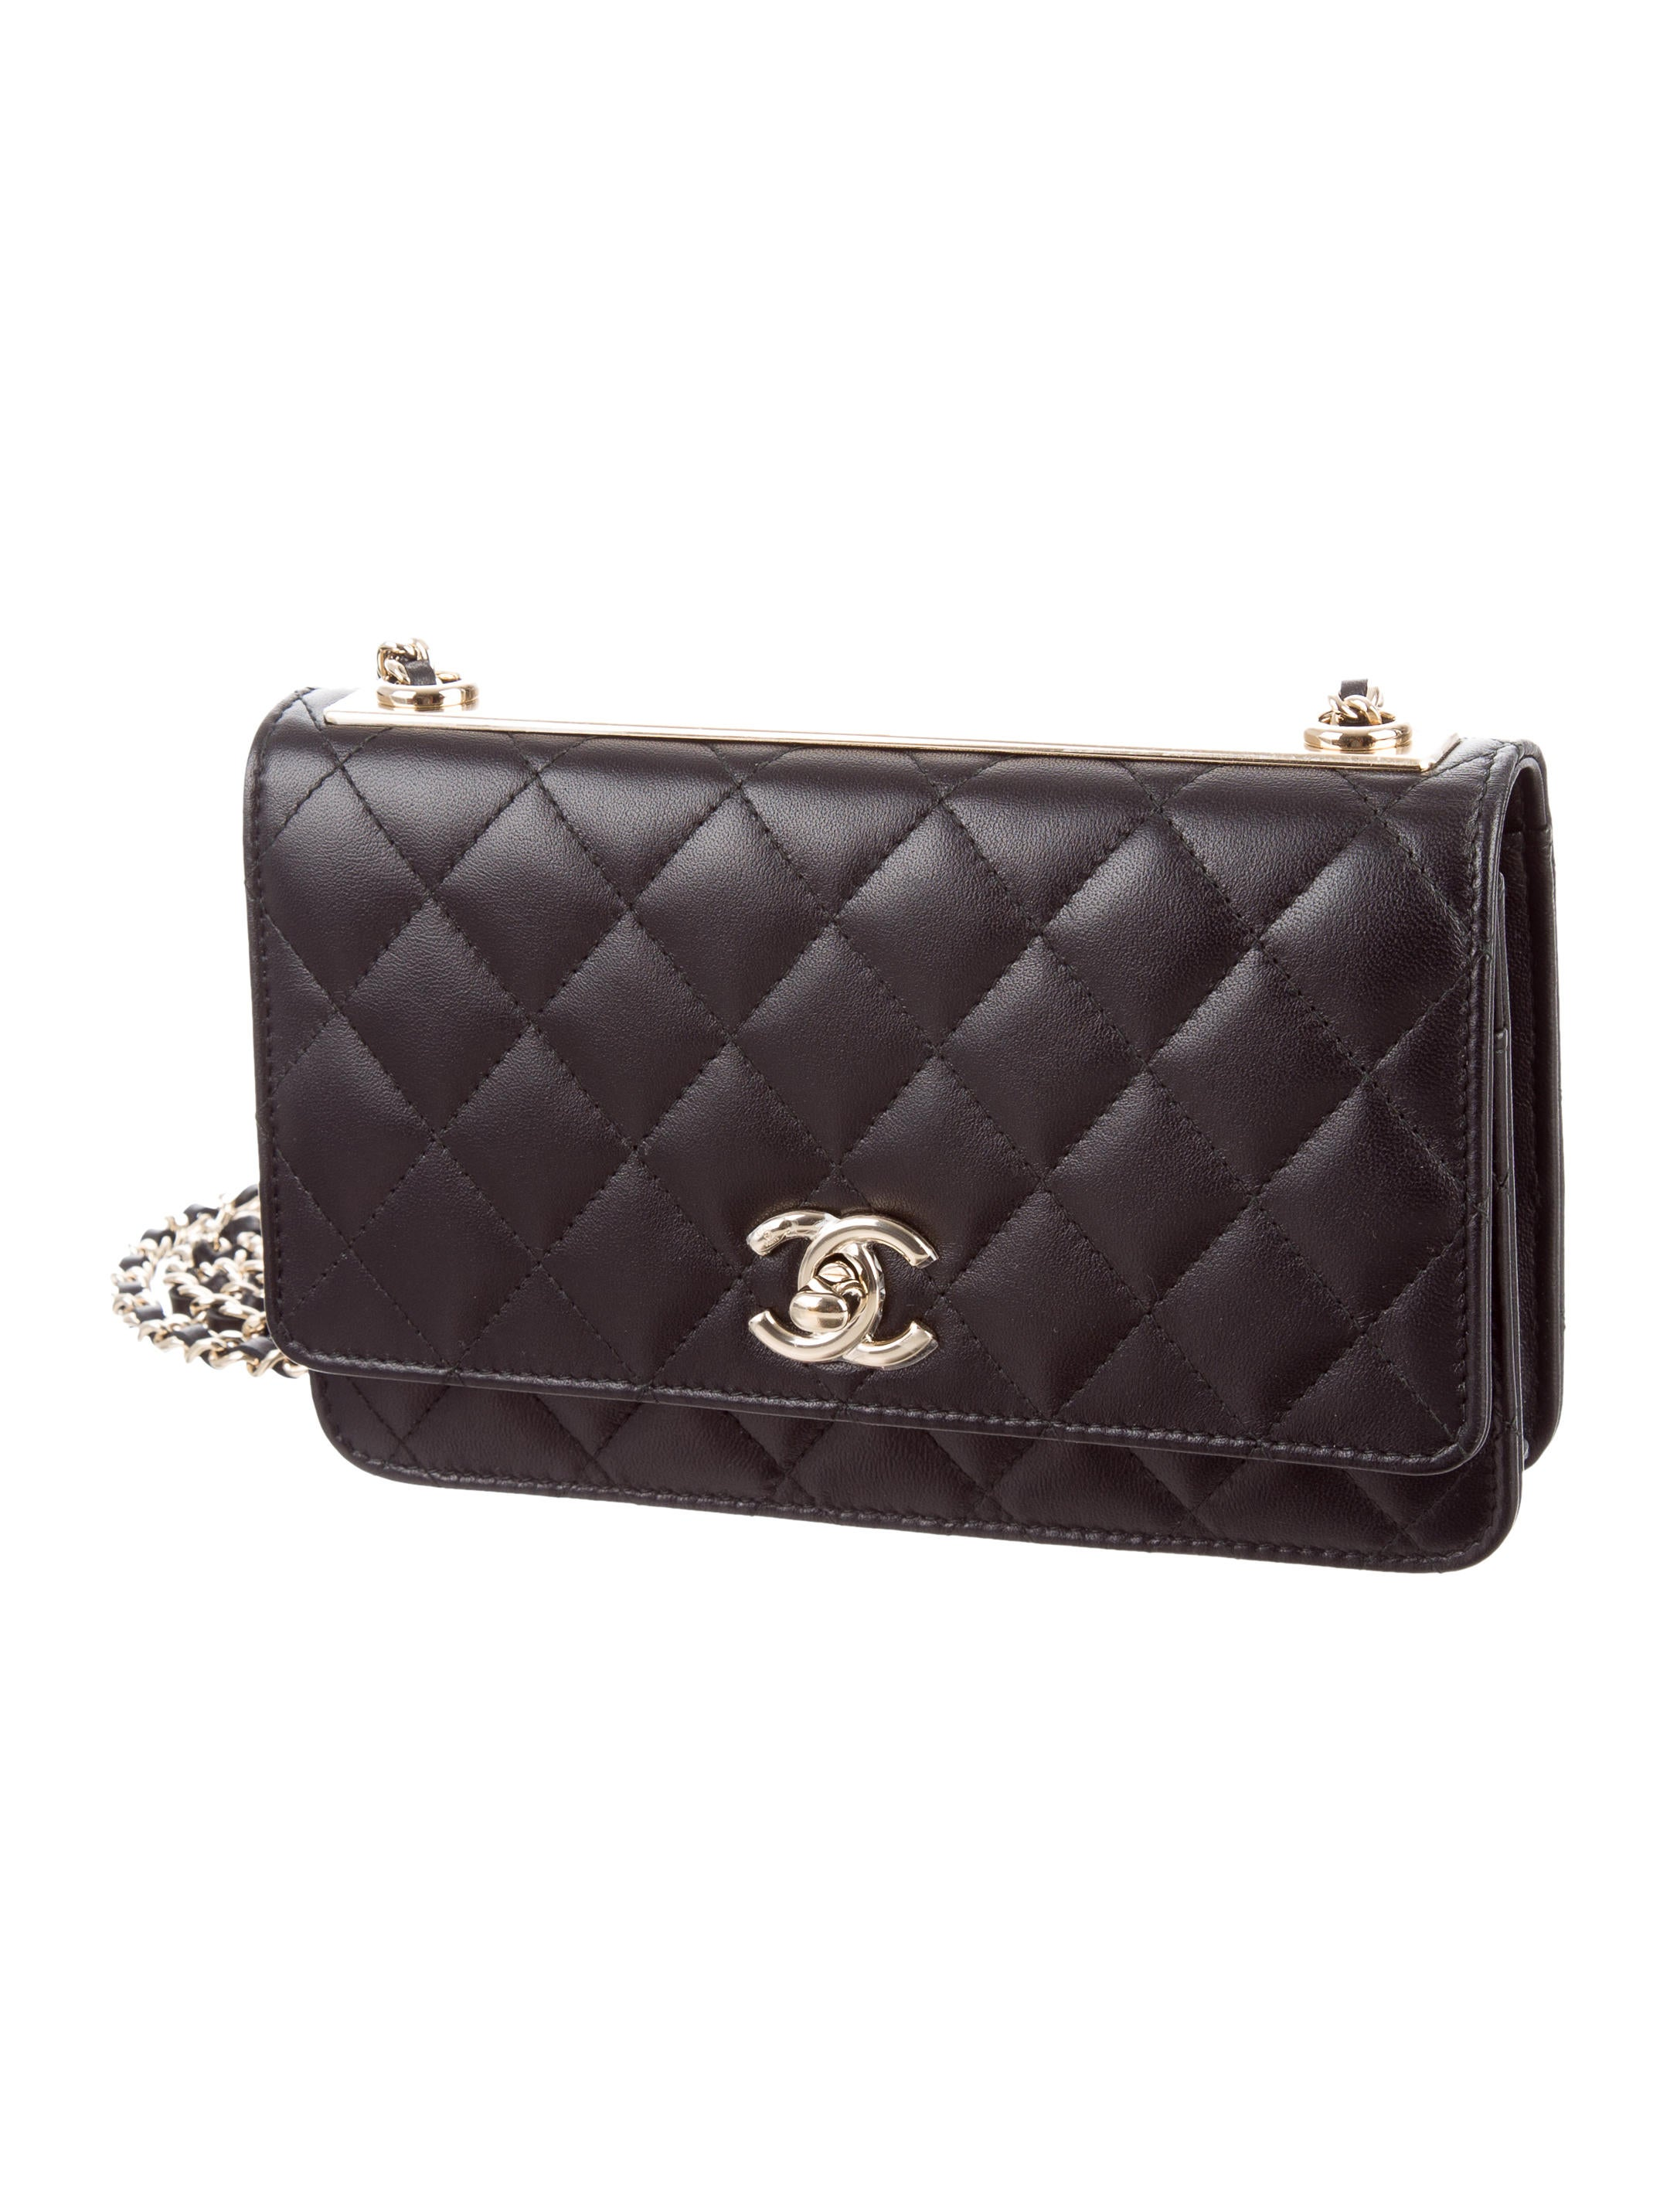 80003dc013a Chanel 2017 Trendy CC Wallet On Chain - Handbags - CHA186912 | The RealReal